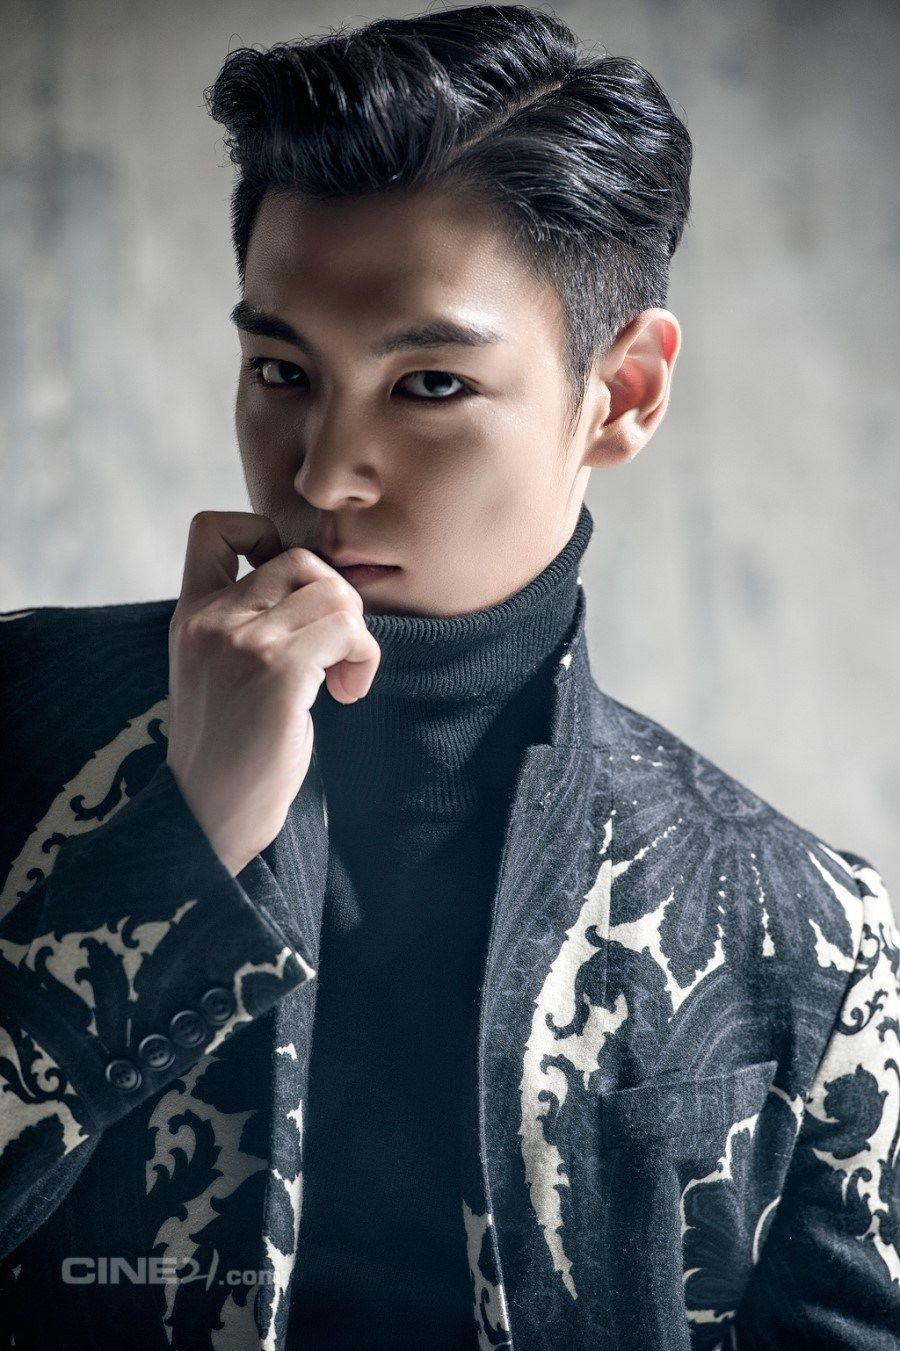 Top For Cine21 Magazine I Personally Use This Pic To Show My Love